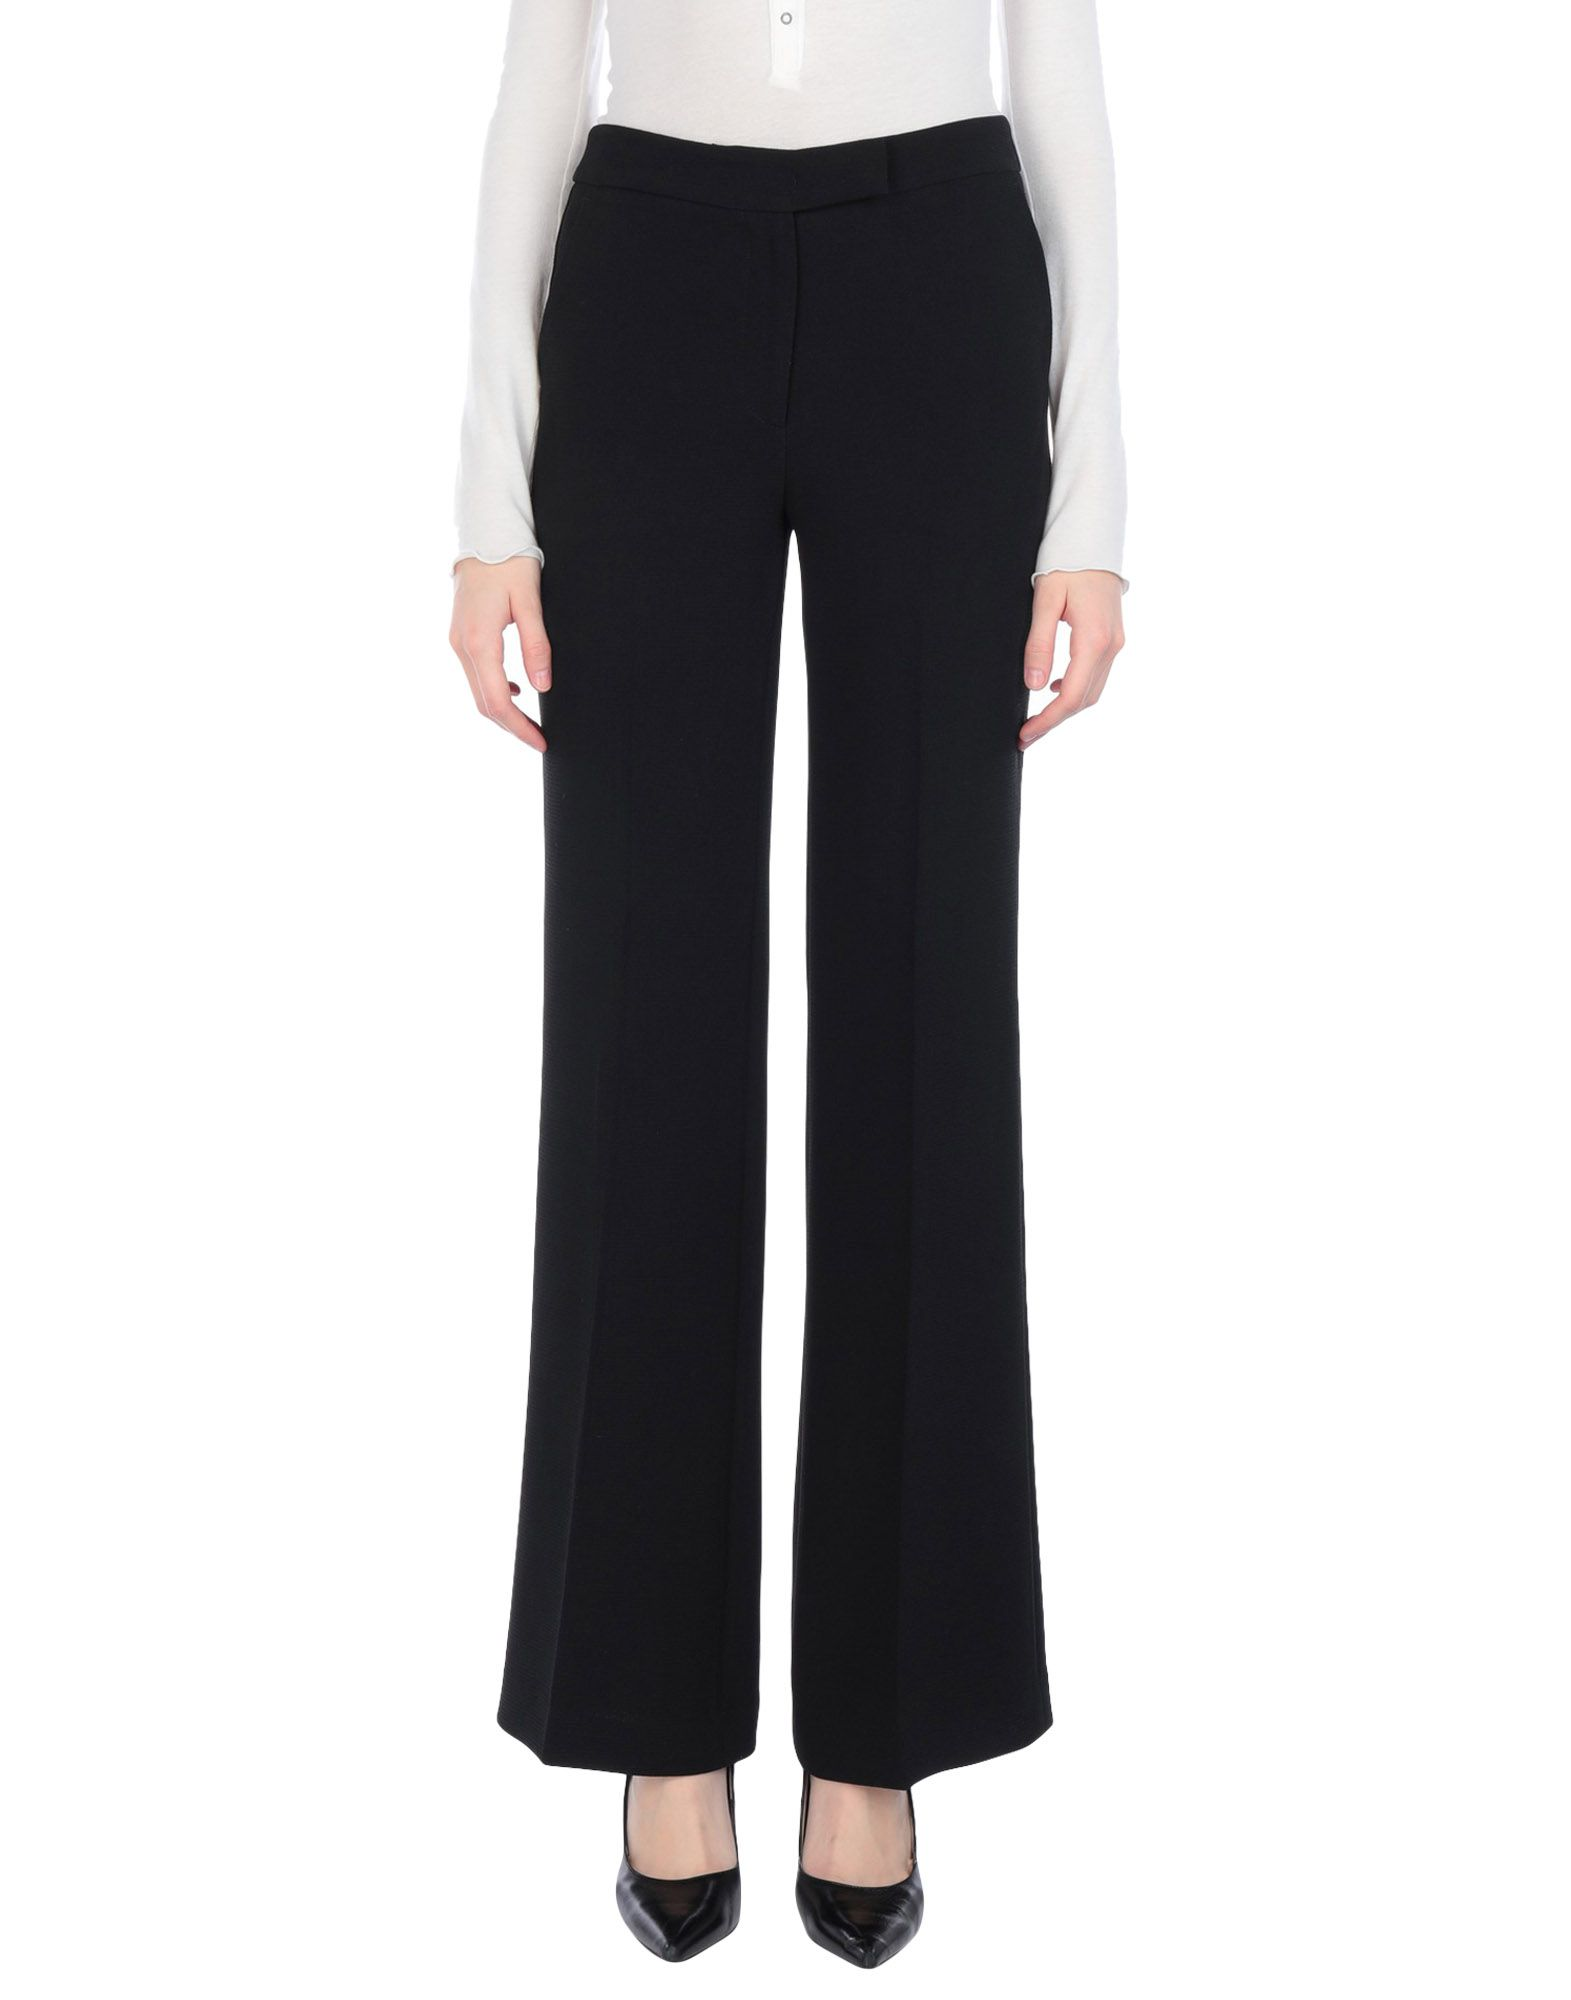 ESSENTIEL ANTWERP | ESSENTIEL ANTWERP Casual Pants 13282743 | Goxip